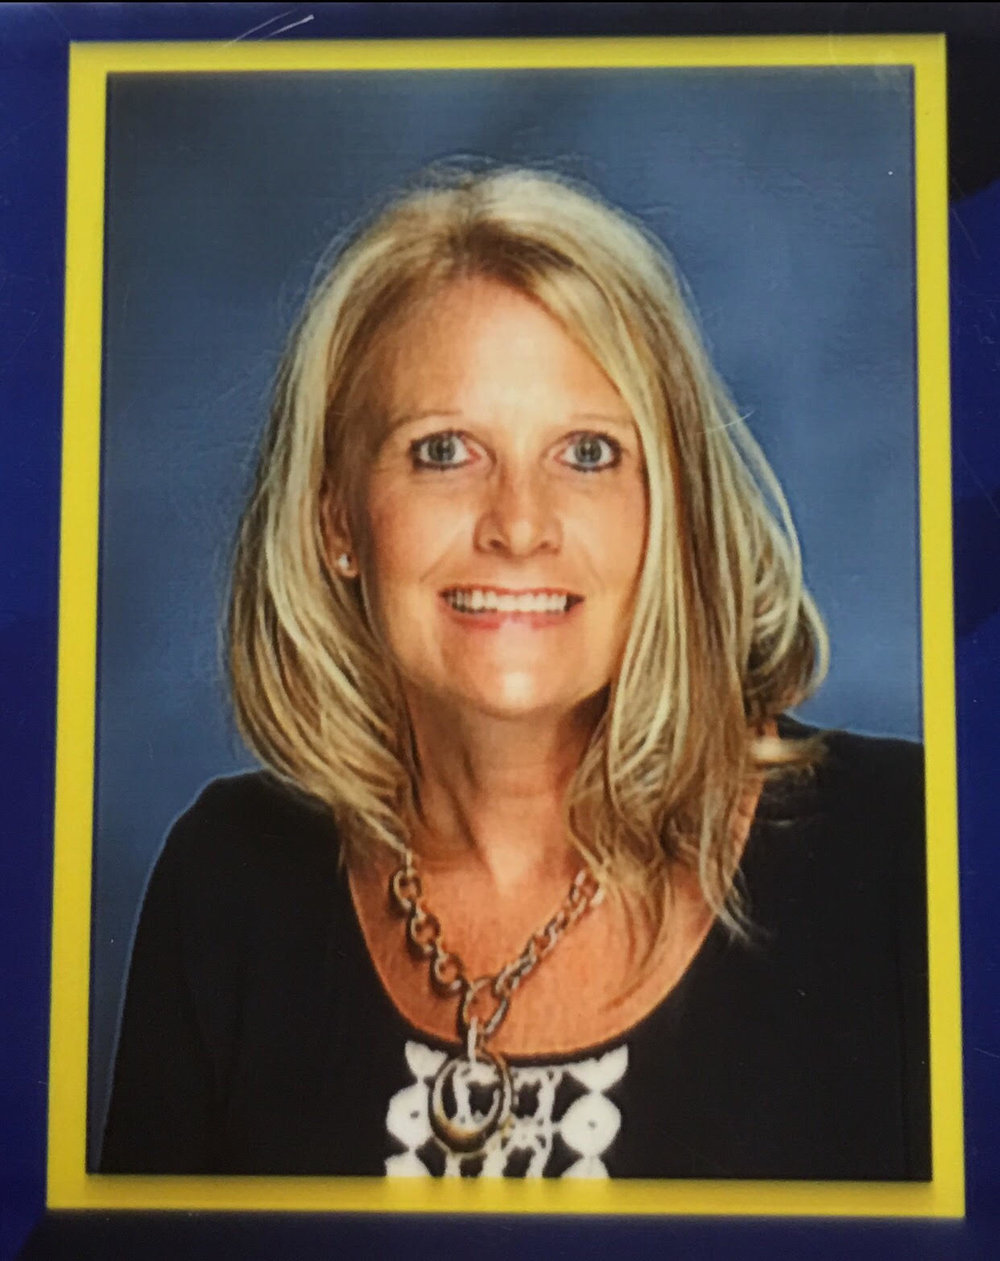 Jennifer Huff (@jhuff1201) Educational Technology Specialist